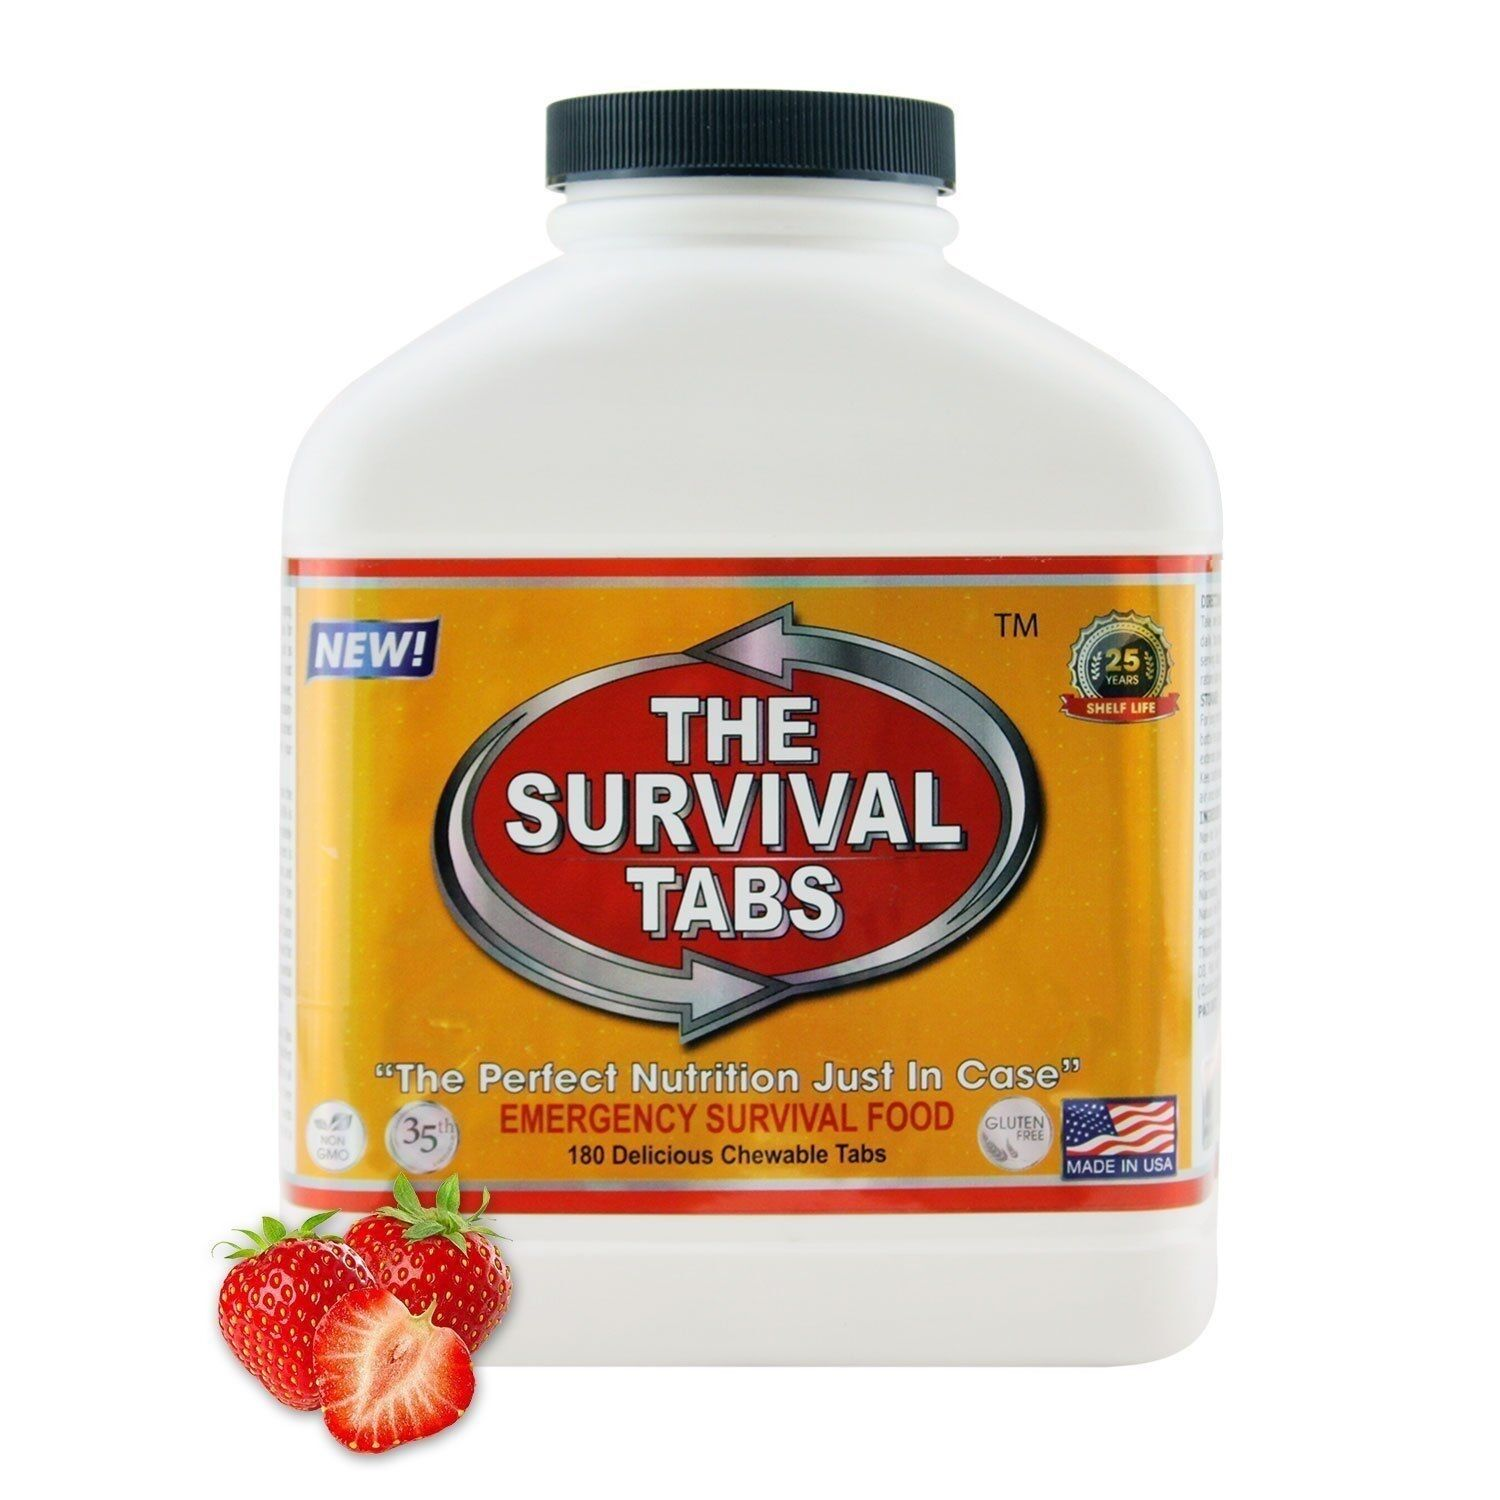 NEW Emergency Food Predein Survival Tabs 180 Strawberry  Food 15 Days  save up to 70%